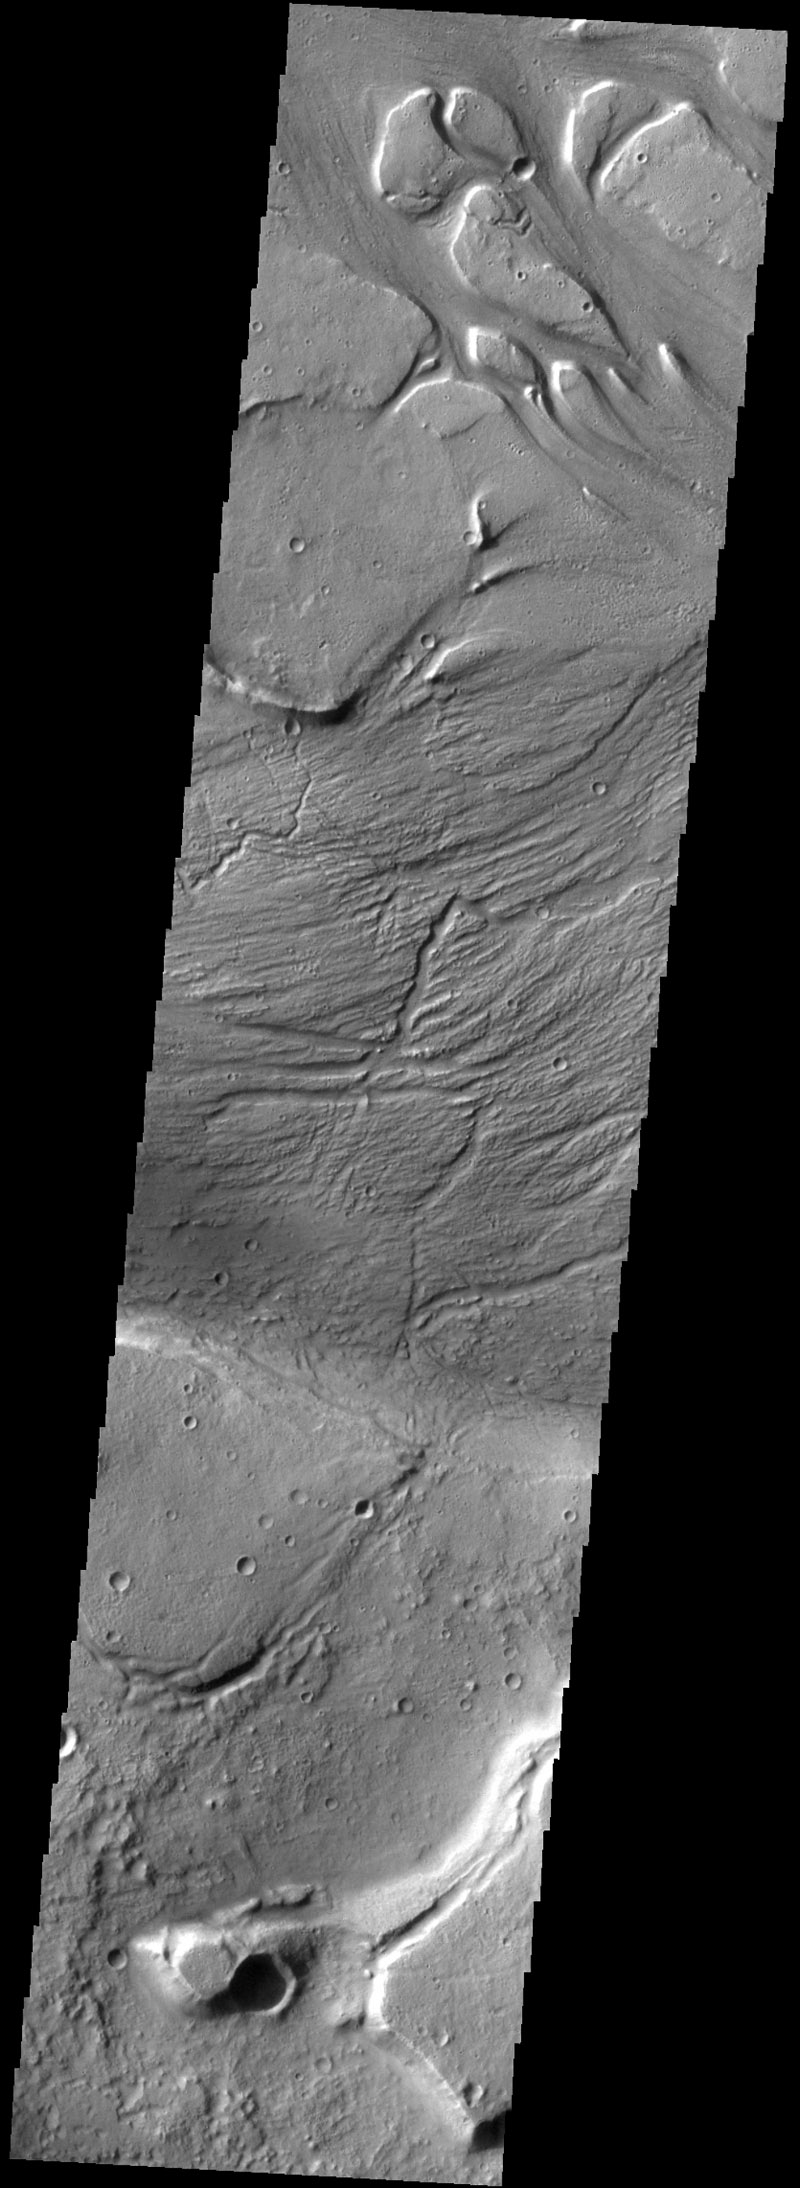 There are several streamlined islands in this image of Kasei Valles. This image captured by NASA's 2001 Mars Odyssey spacecraft is located near the region where Kasei Valles empties into Chryse Planitia.